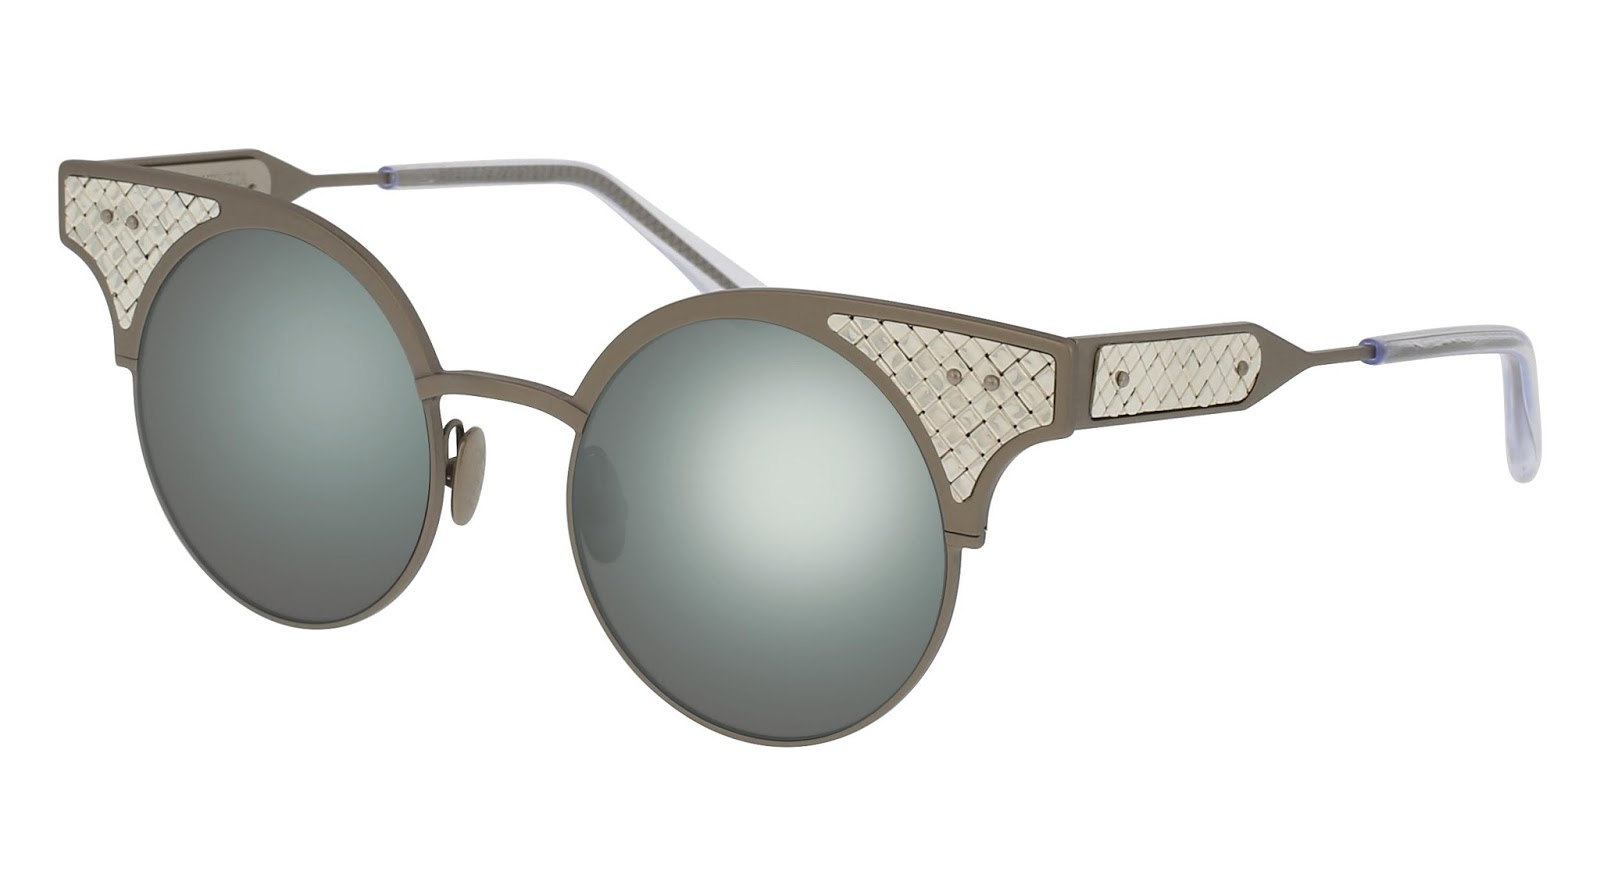 Bottega Veneta's SS17 Eyewear Collection